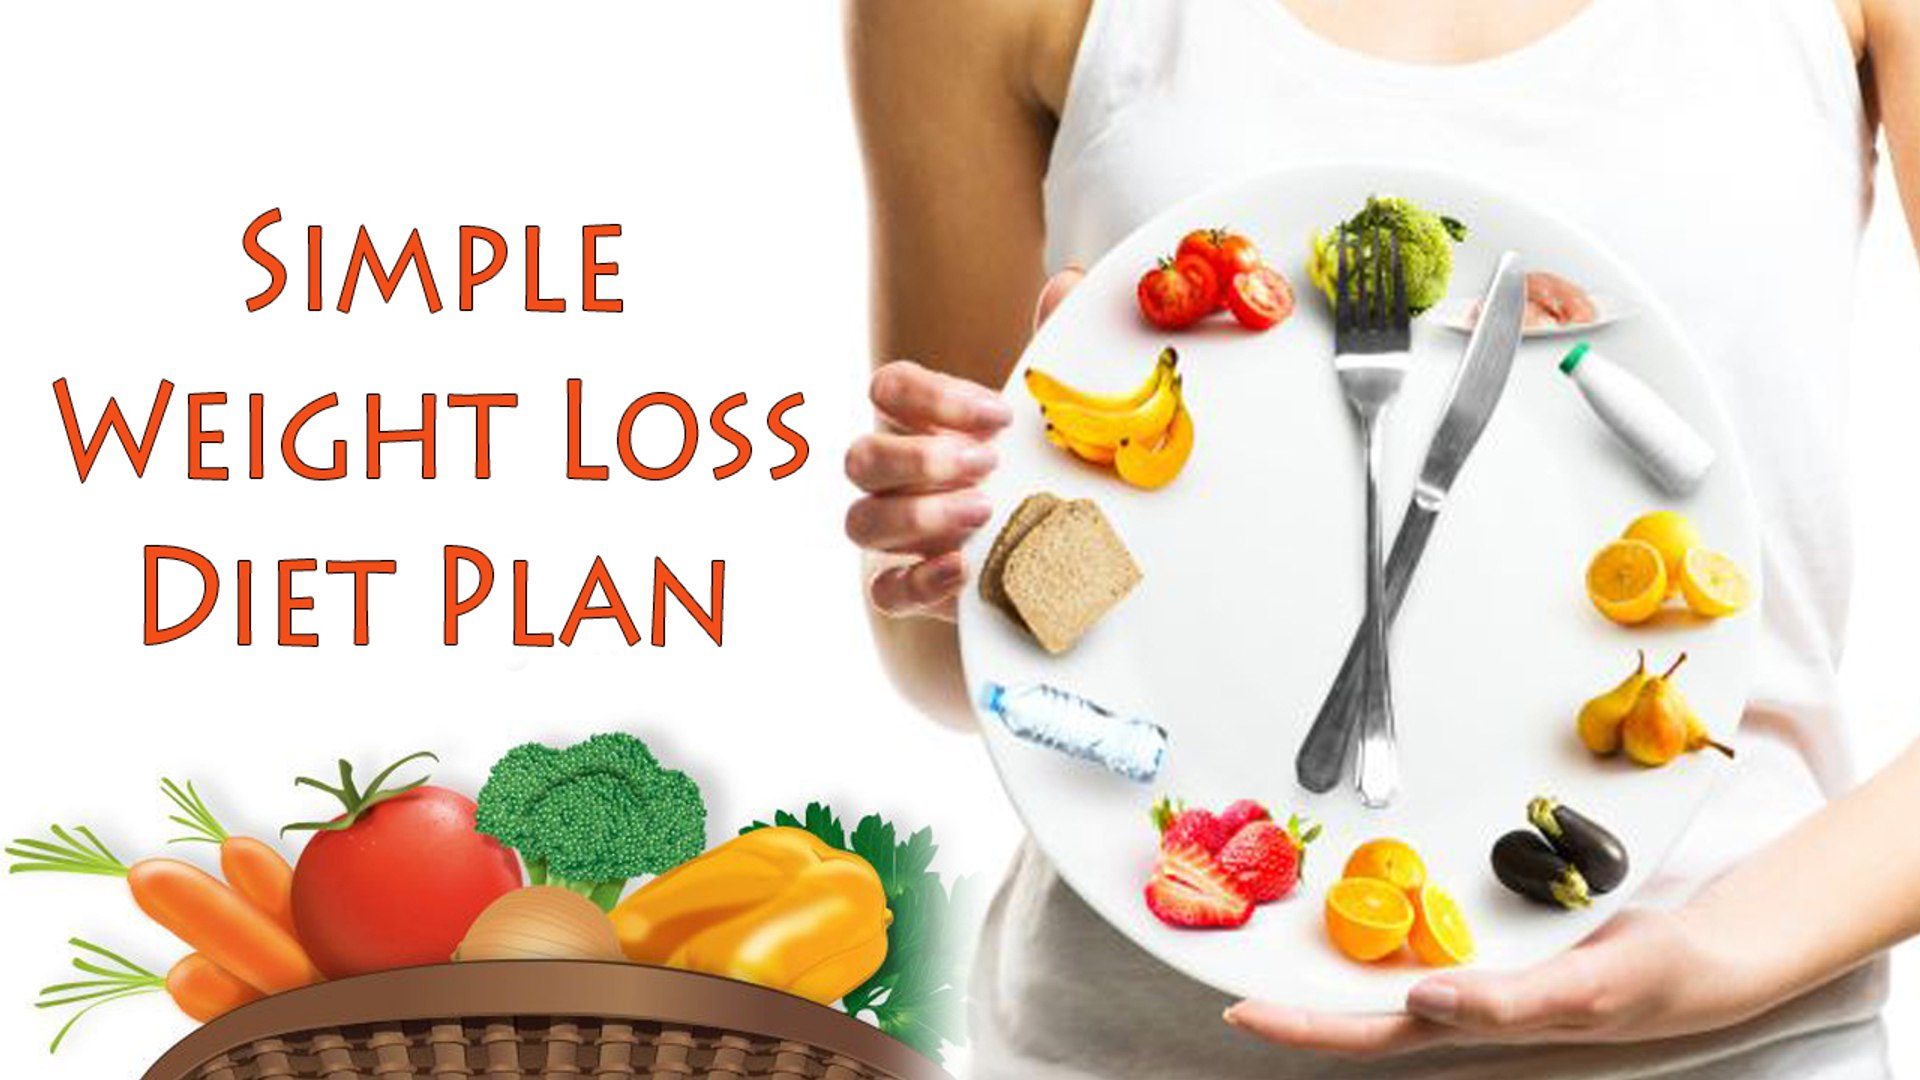 Weight Loss Diet Plan   Lose Weight With a Simple Diet